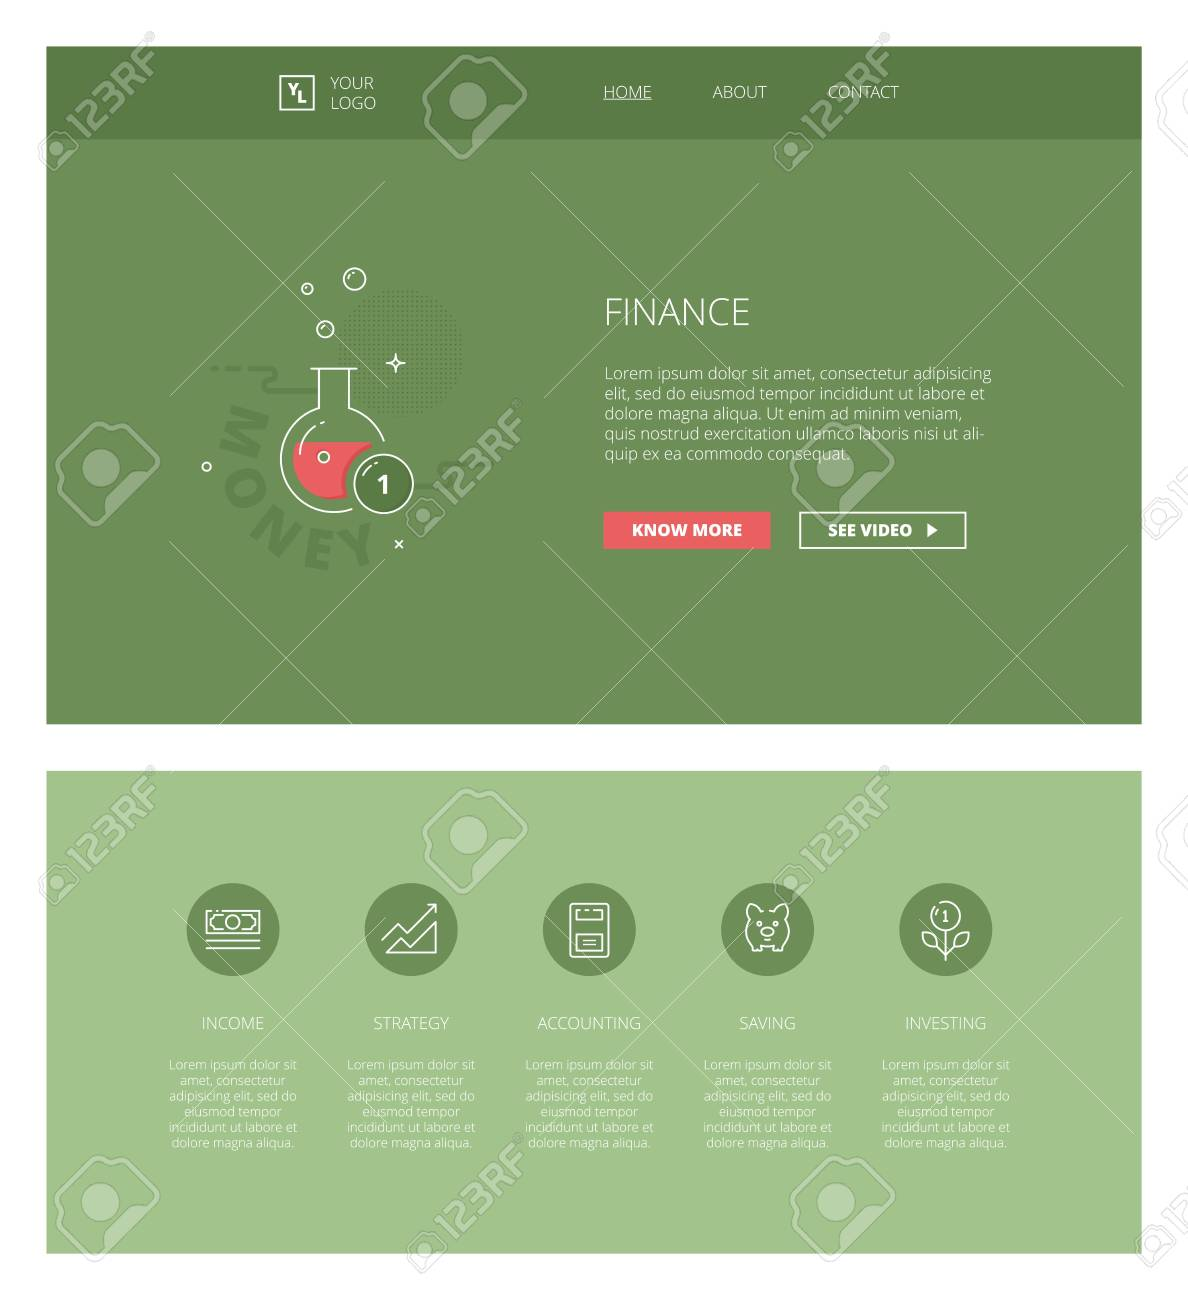 Minimal Design Web Template With Header And Five Icons For Financial ...